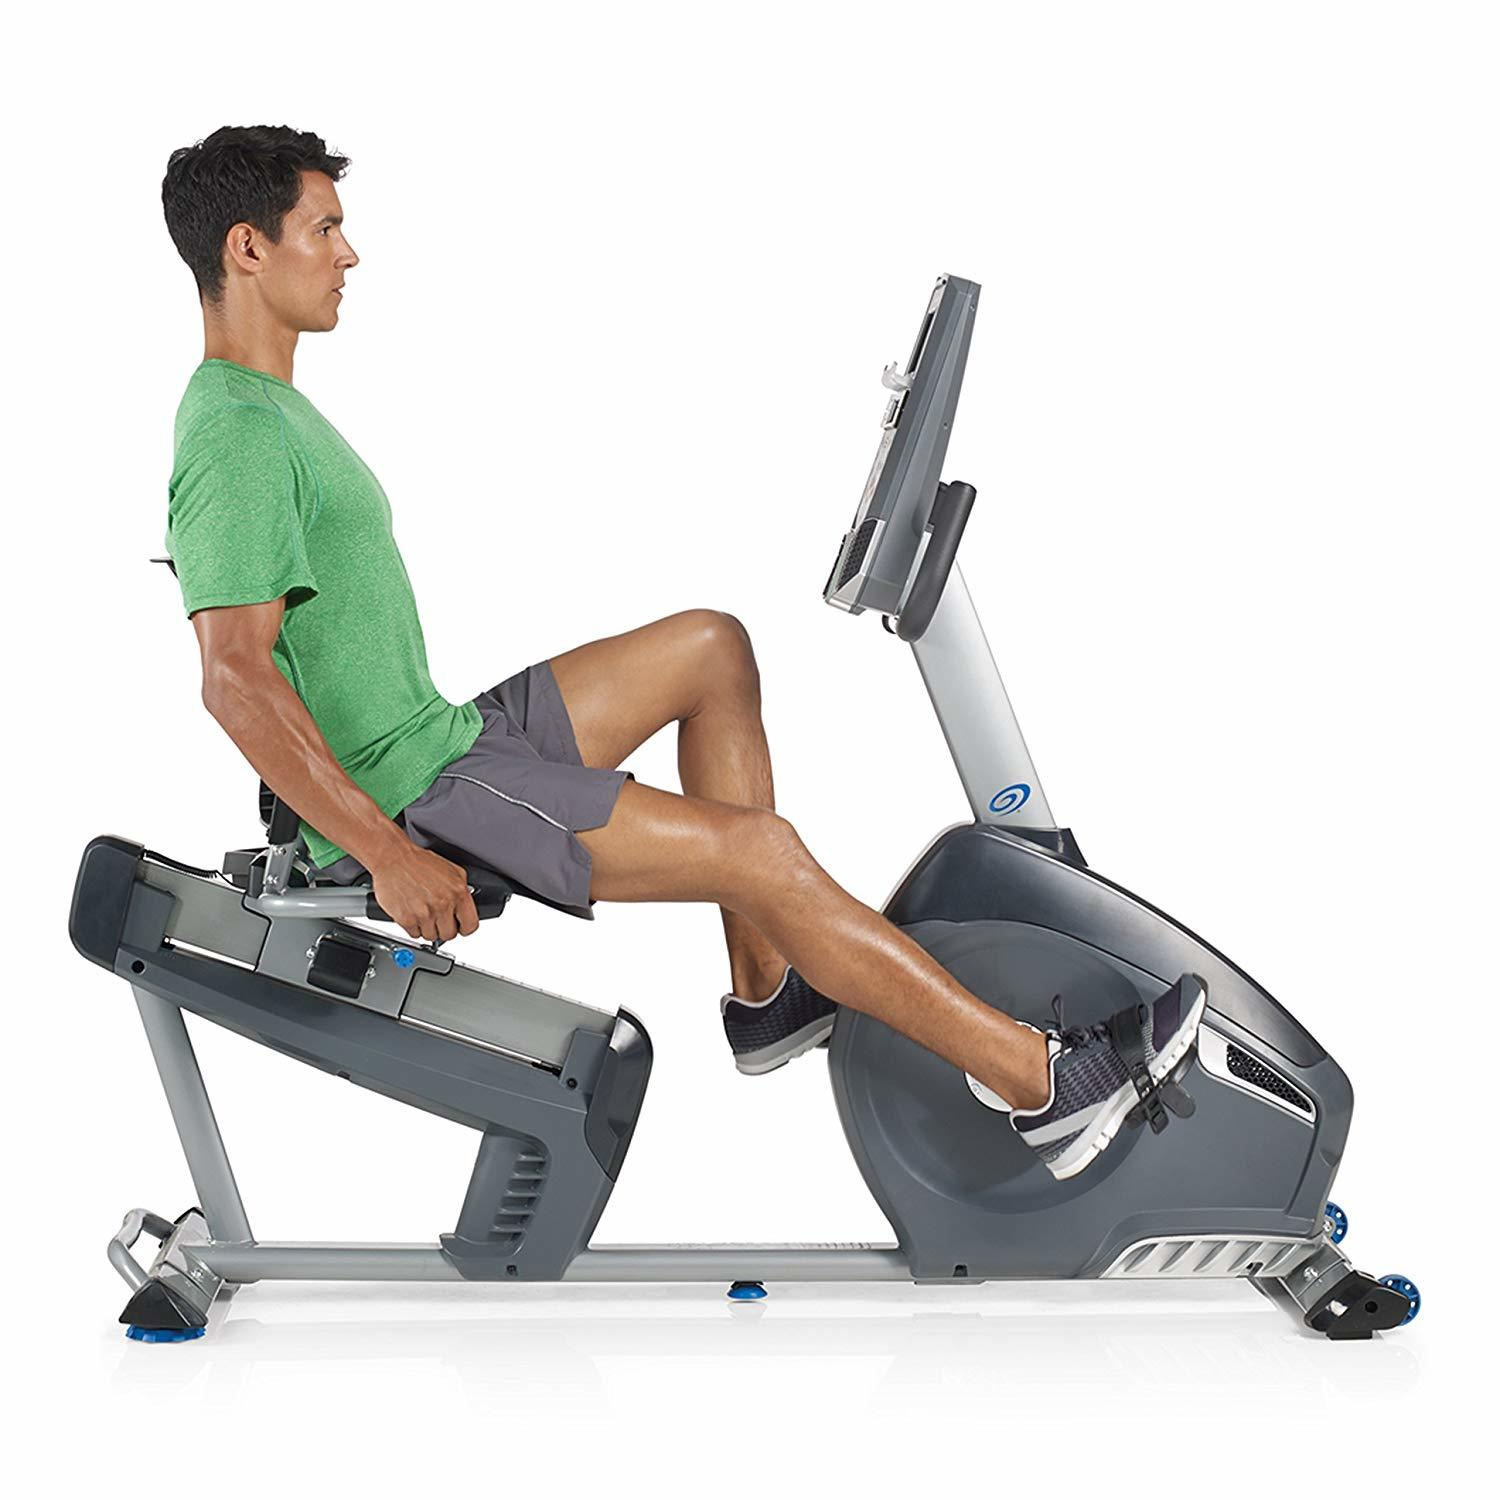 7 Best recumbent exercise bikes reviewed 4